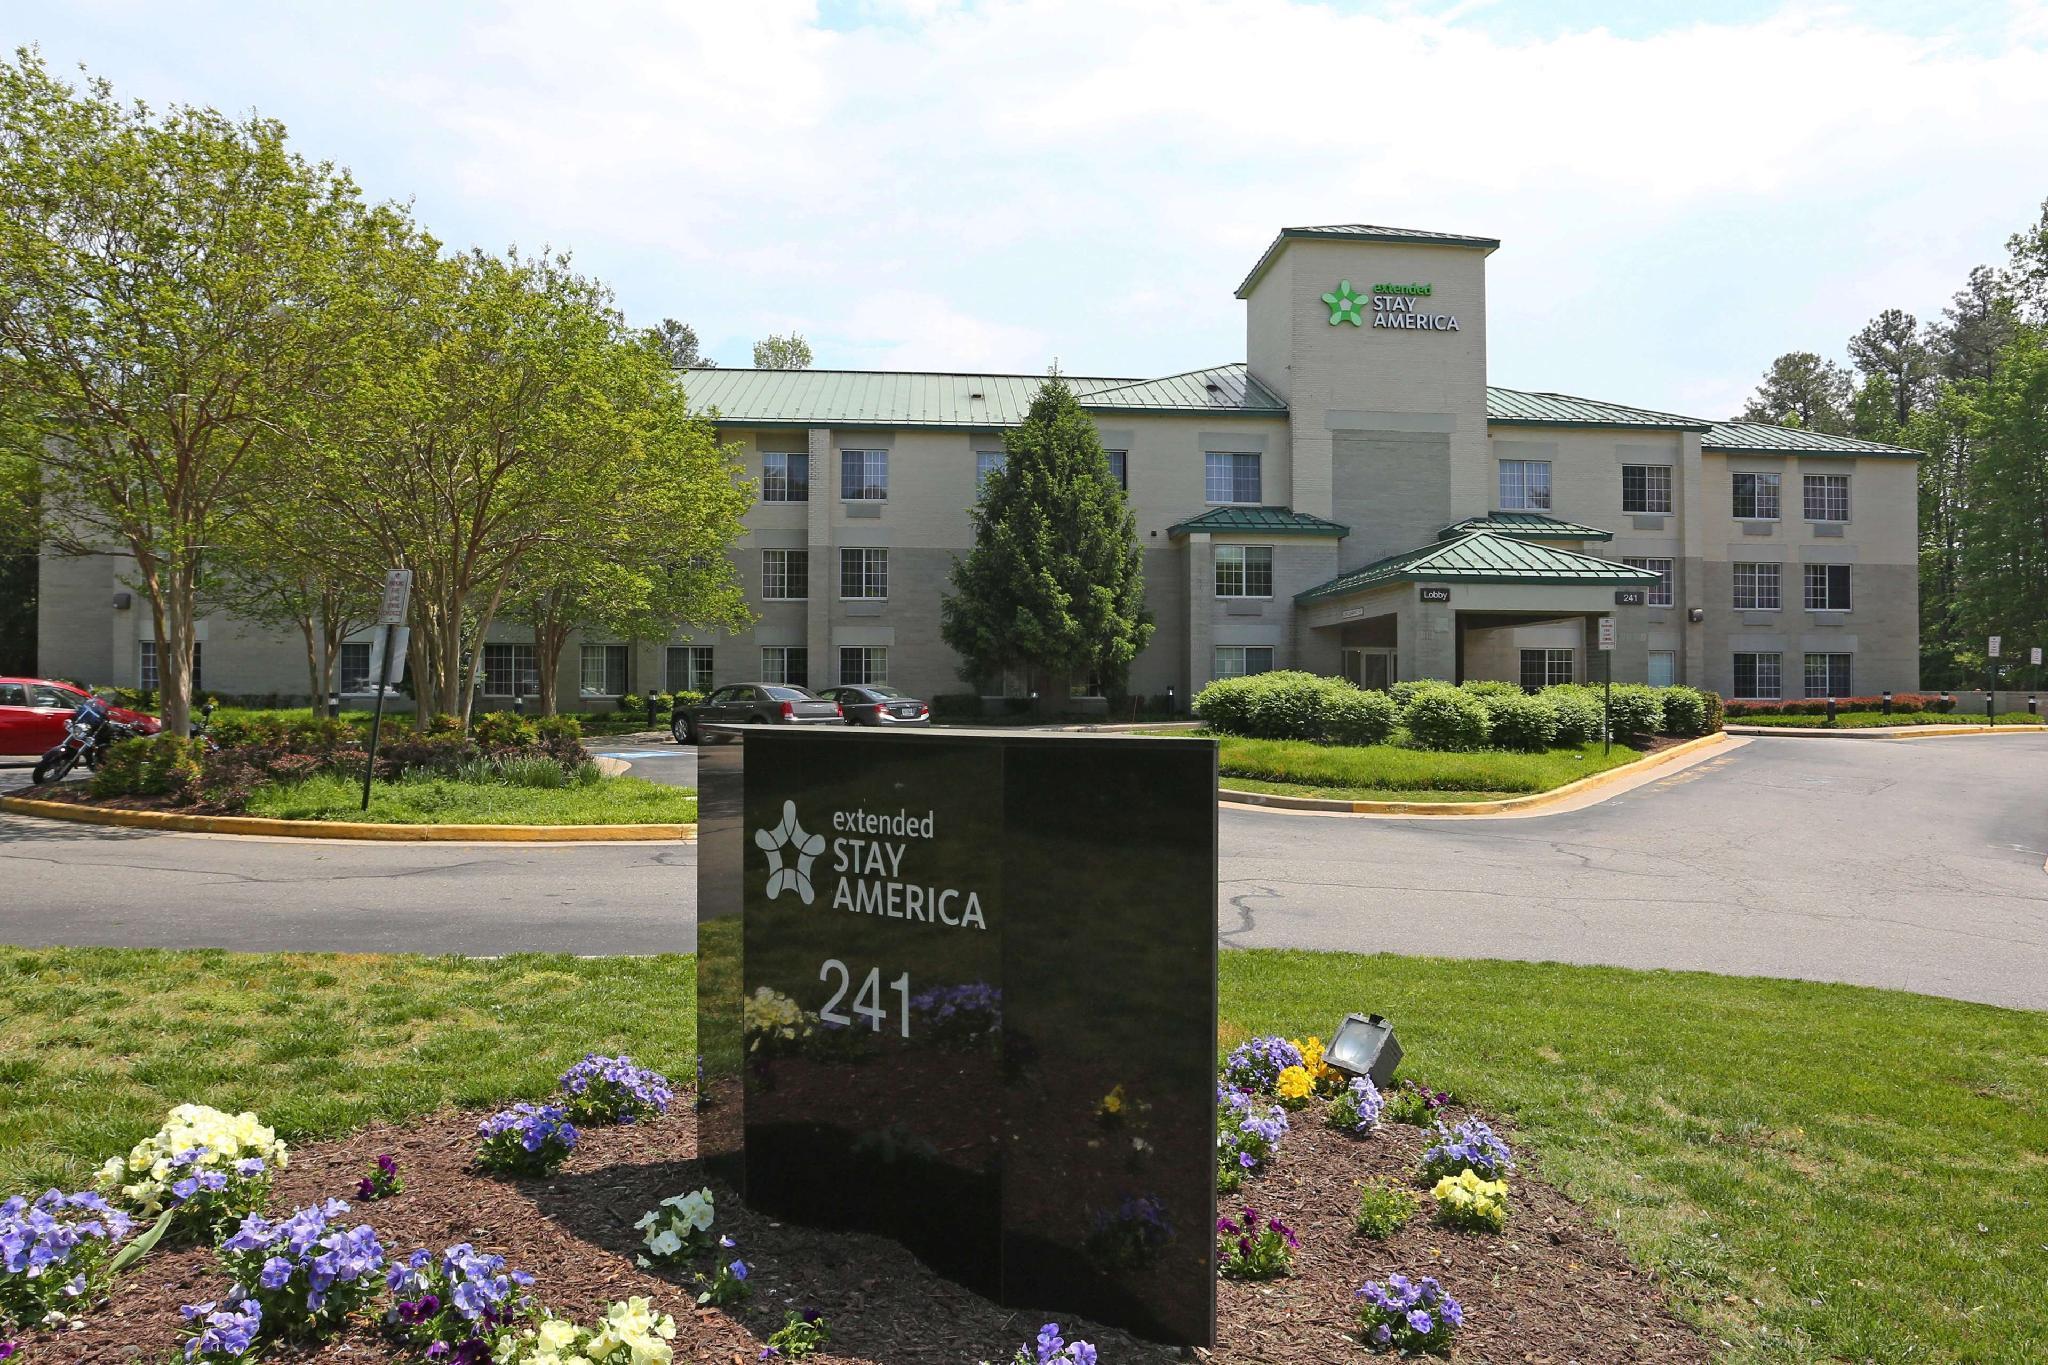 Extended Stay America North Chesterfield Arboretum